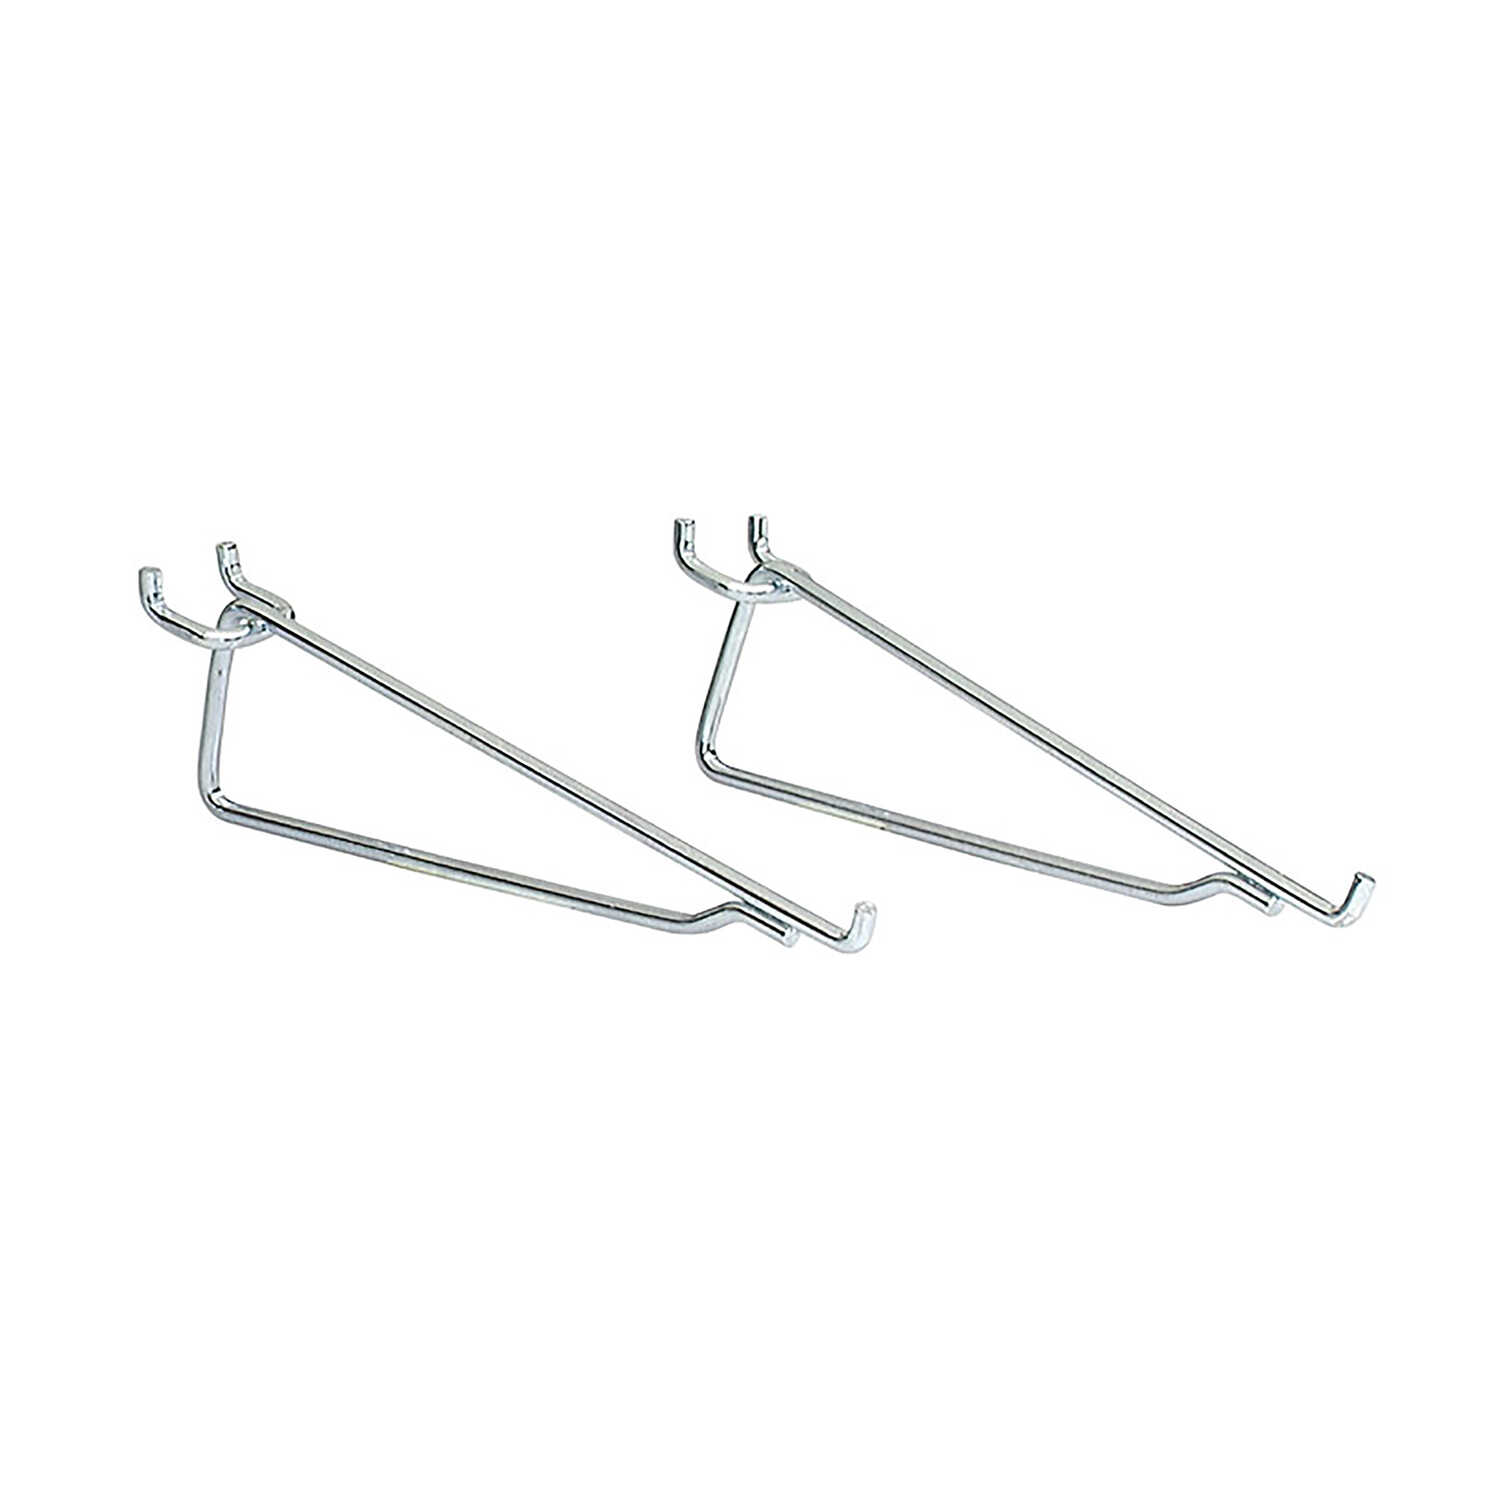 Crawford  Zinc Plated  Steel  8 in. Peg Hook Shelf Bracket  2  Silver